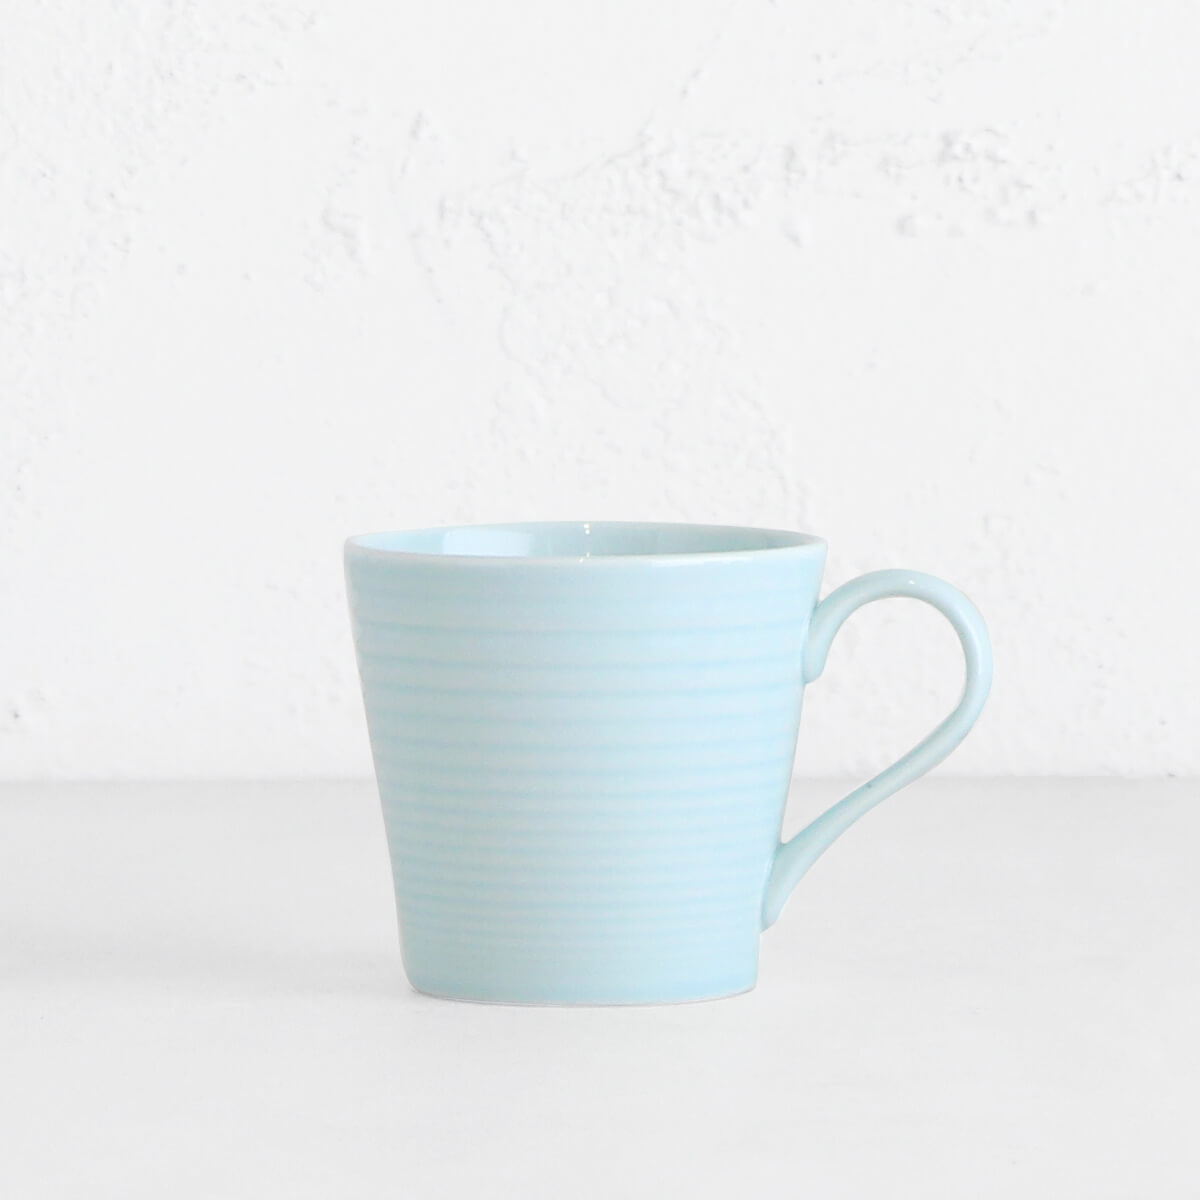 ROYAL DOULTON  | GORDON RAMSAY MUG  |  MAZE BLUE